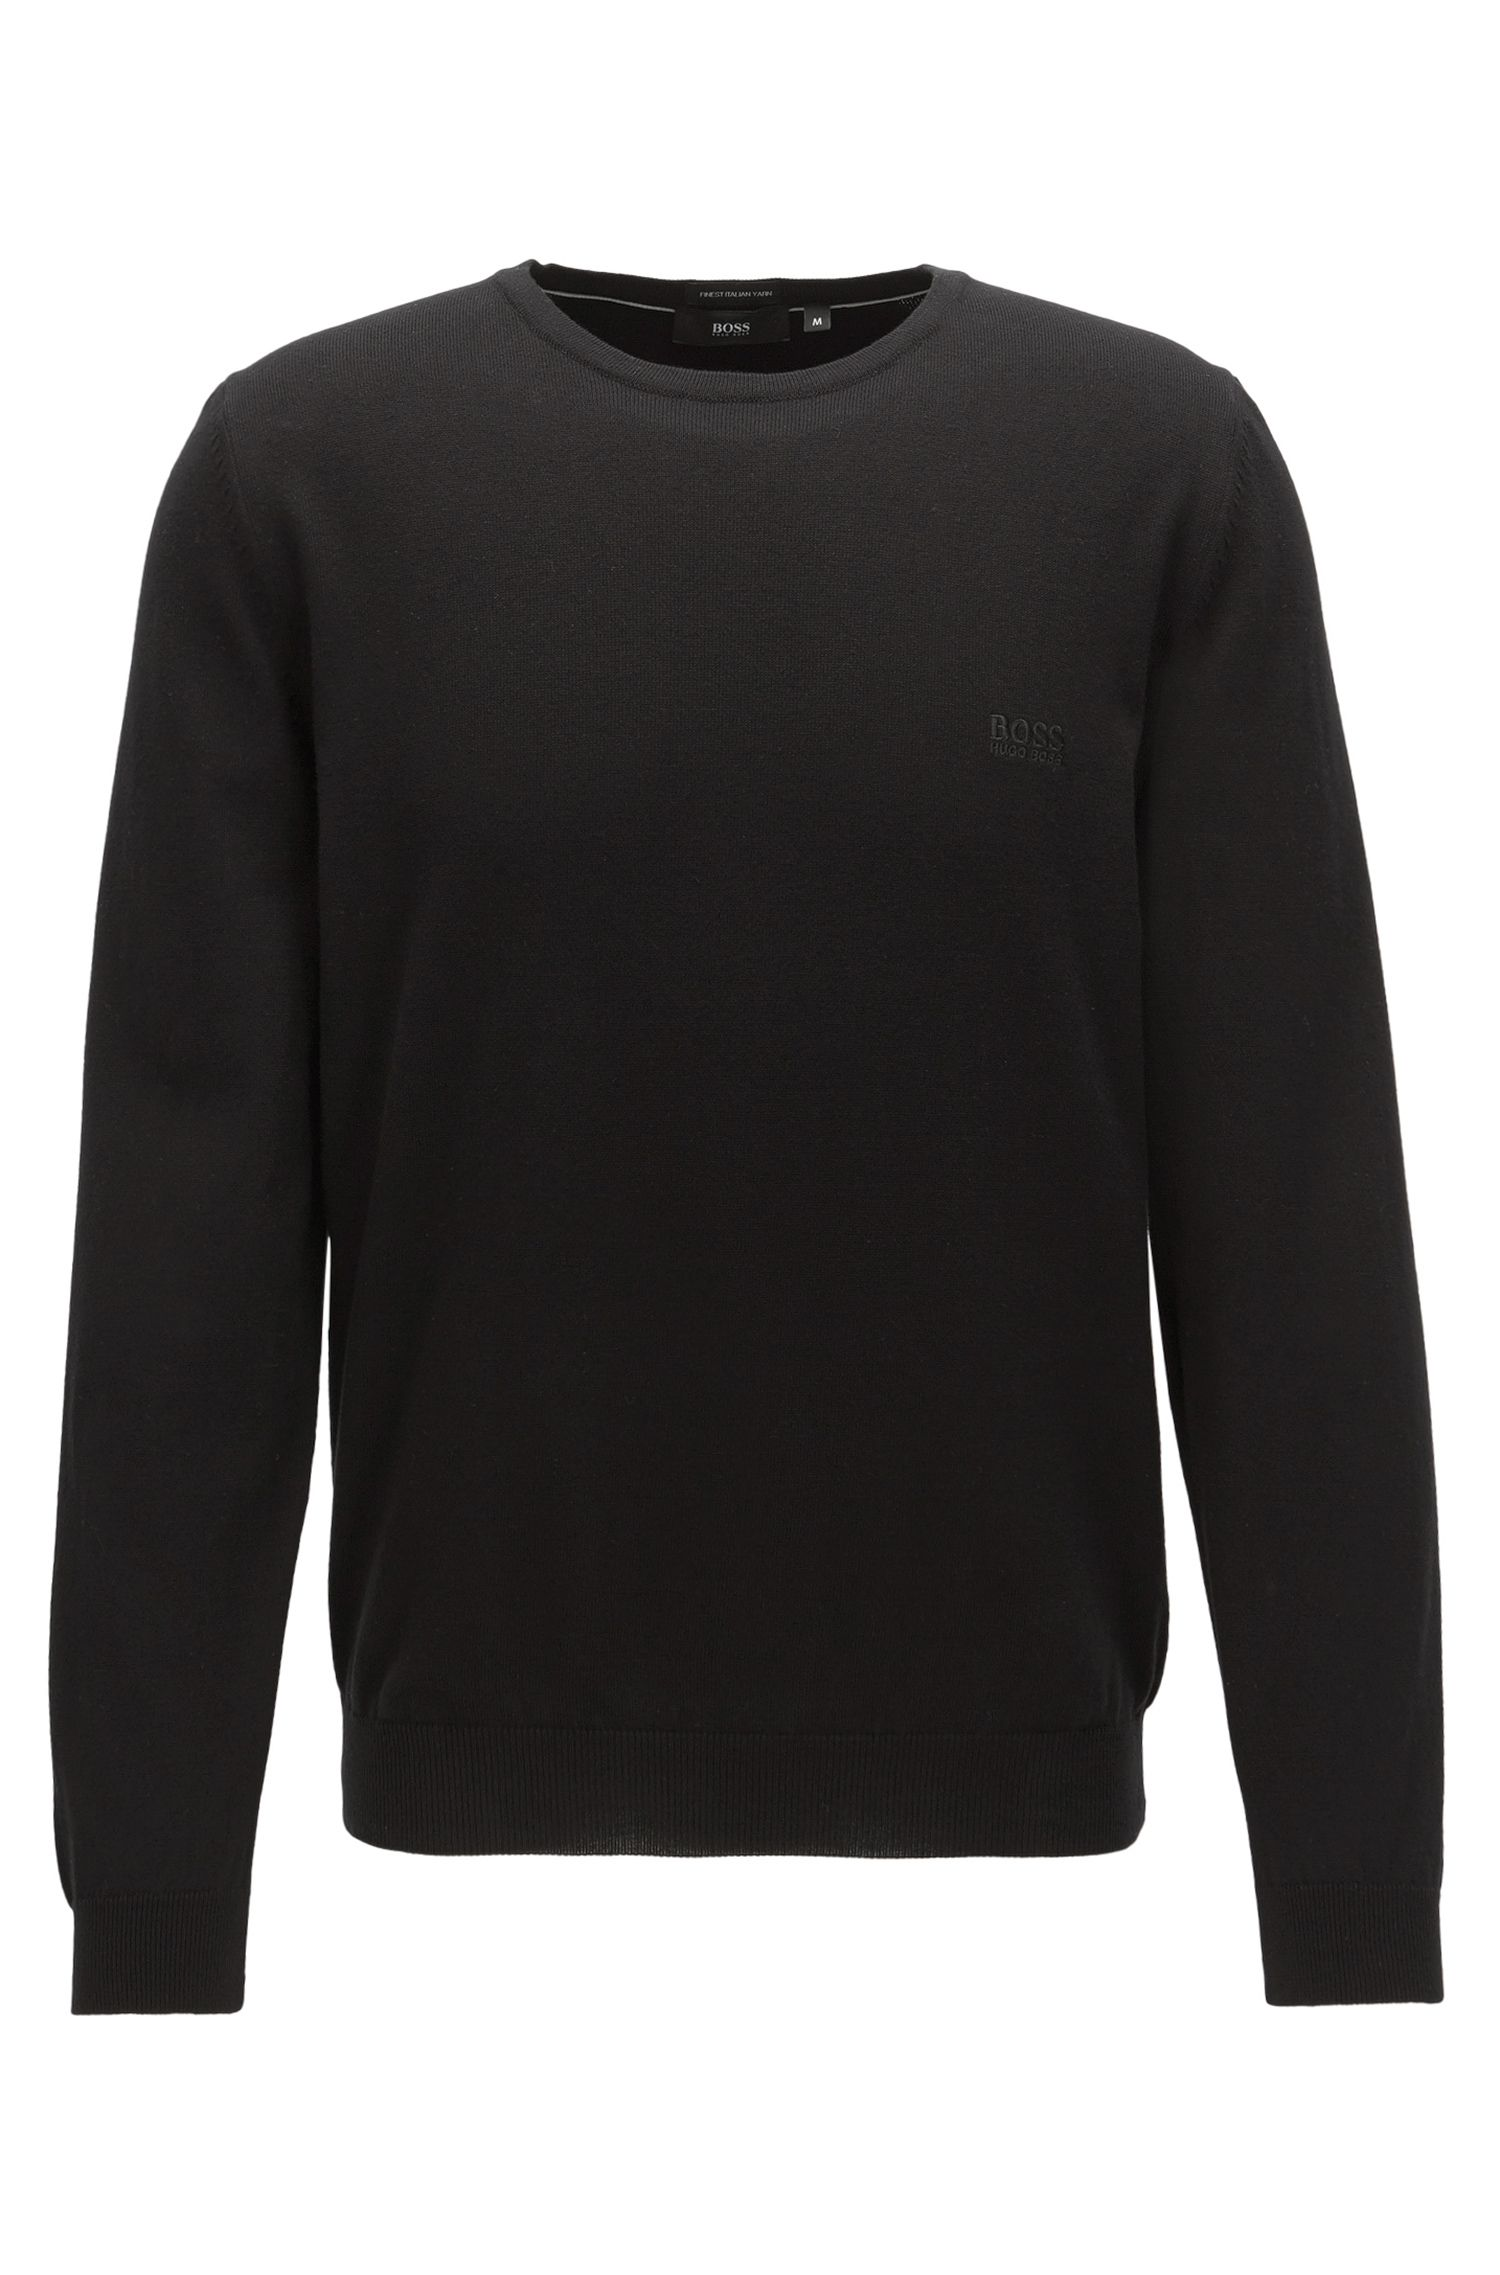 Crew-neck cotton sweater with logo embroidery